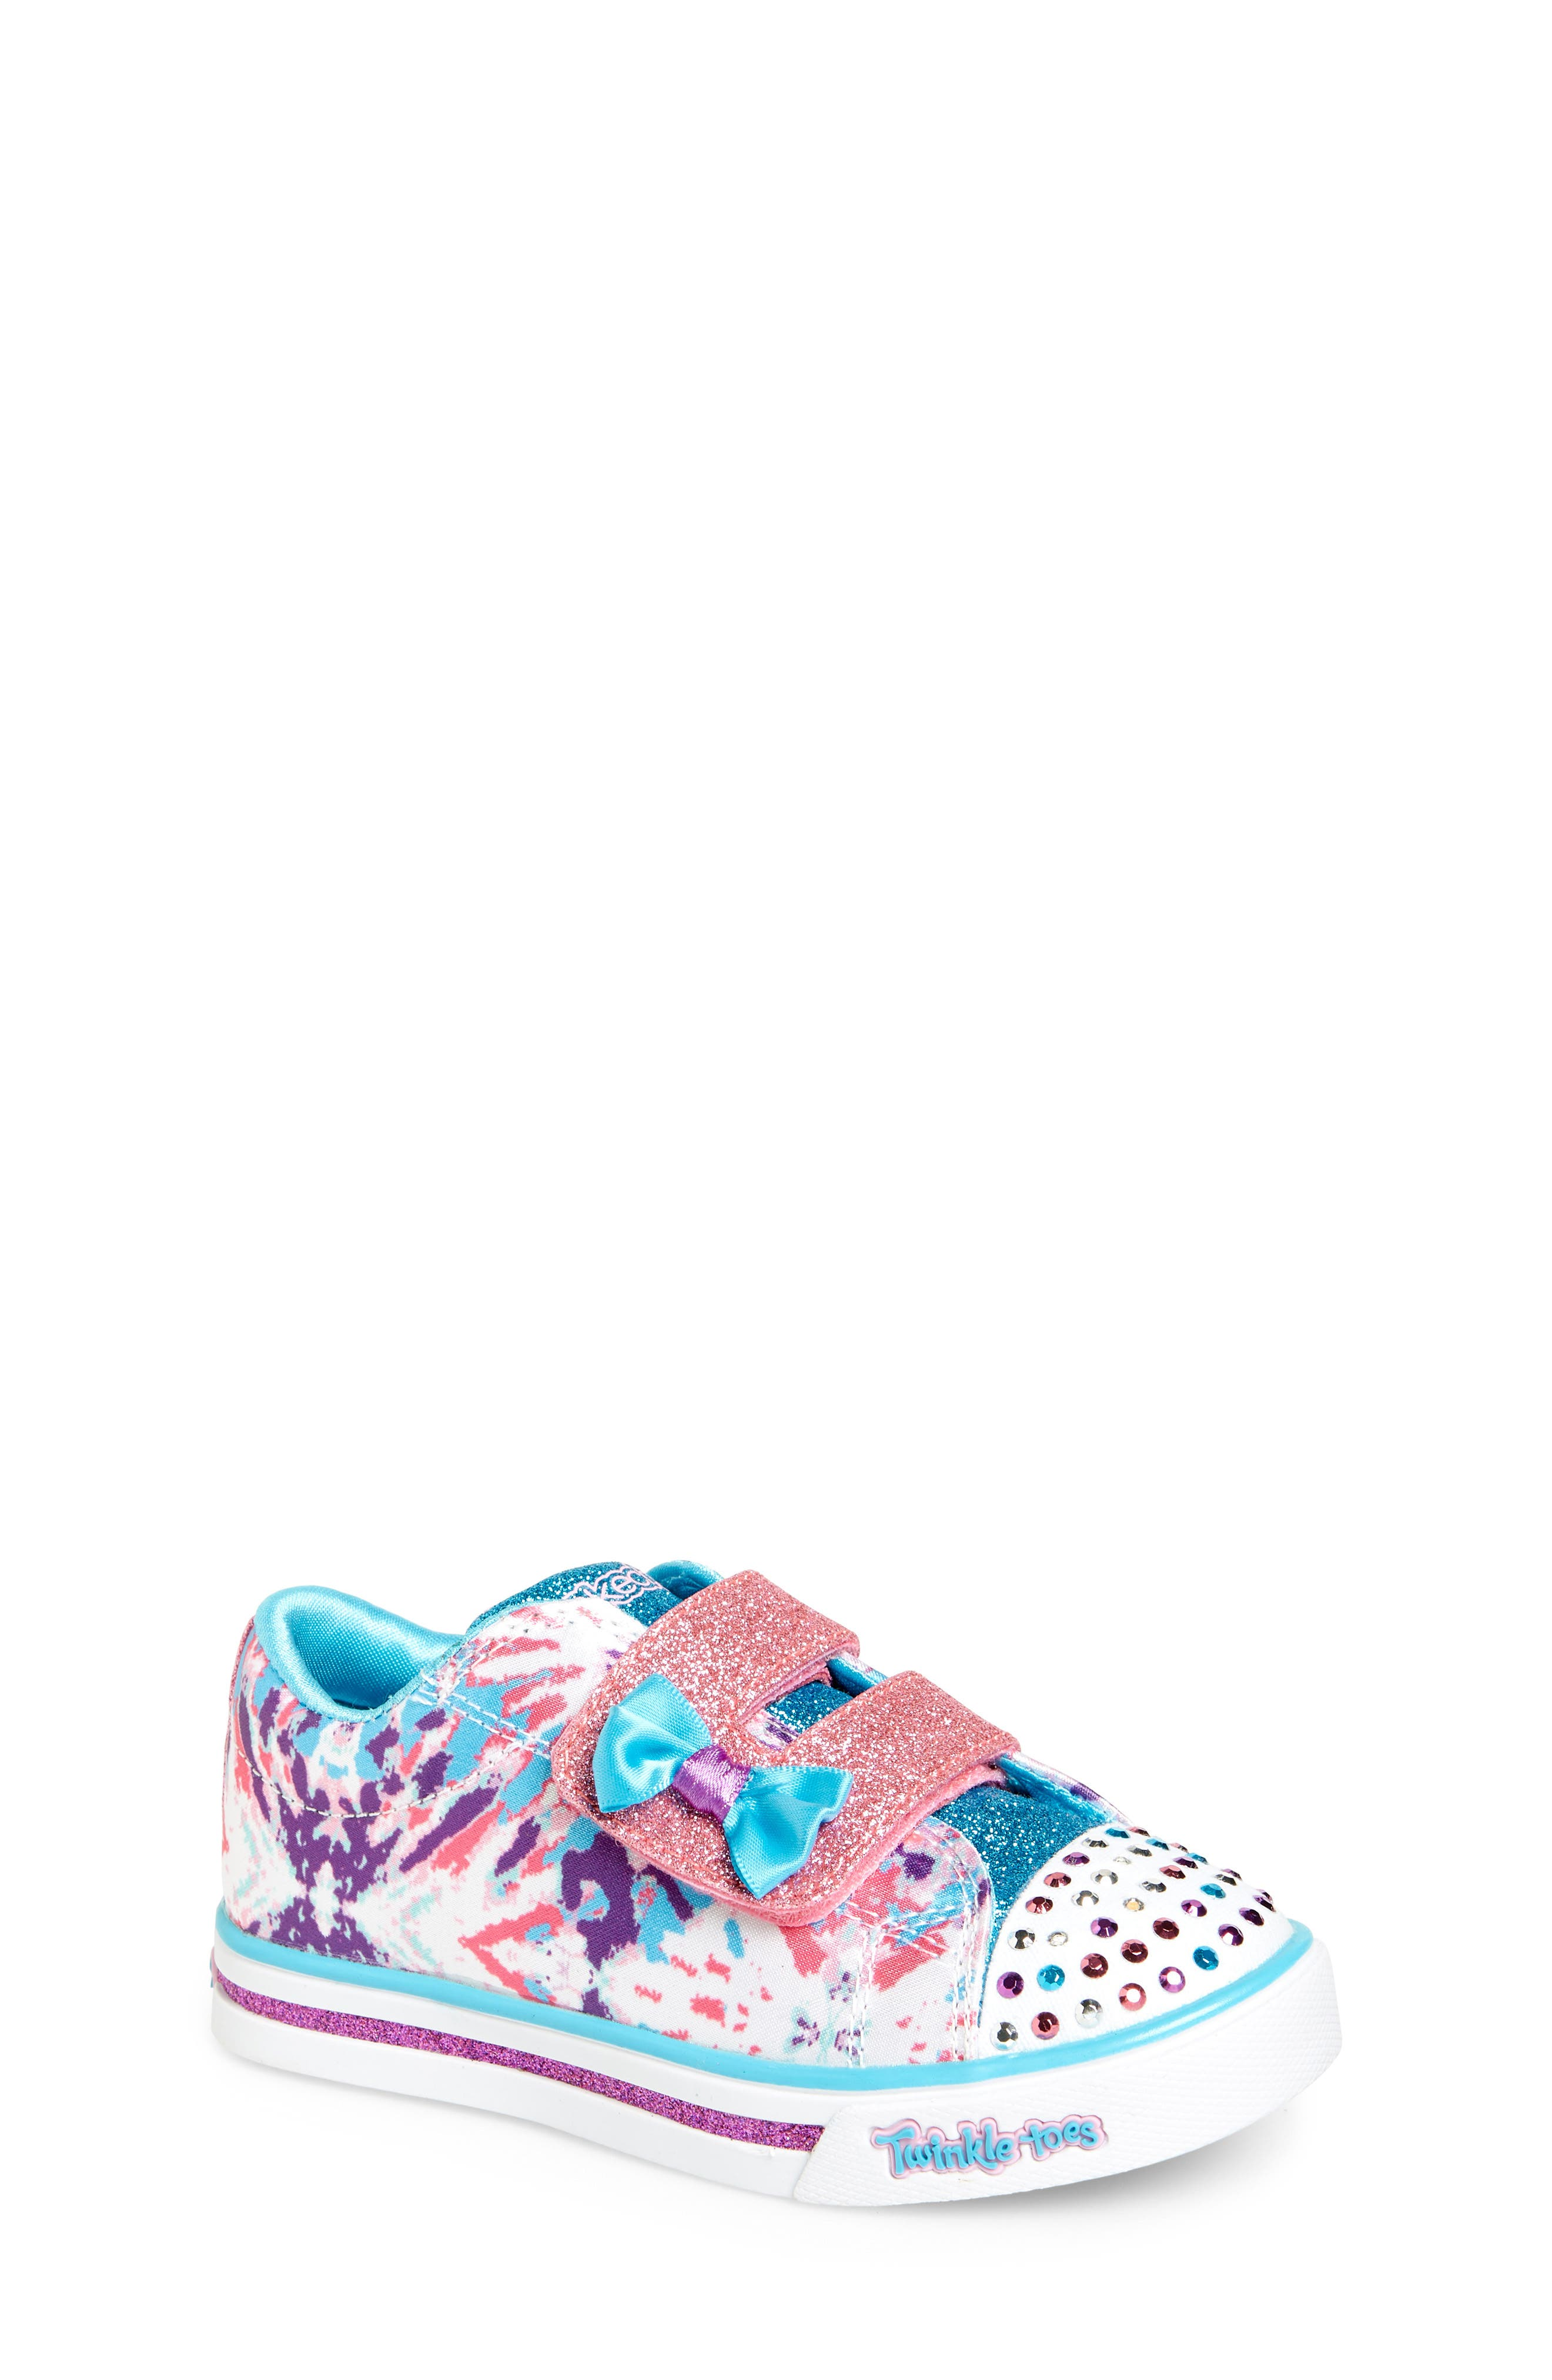 SKECHERS Sparkle Glitz Lil Dazzle Sneaker, Main, color, 199